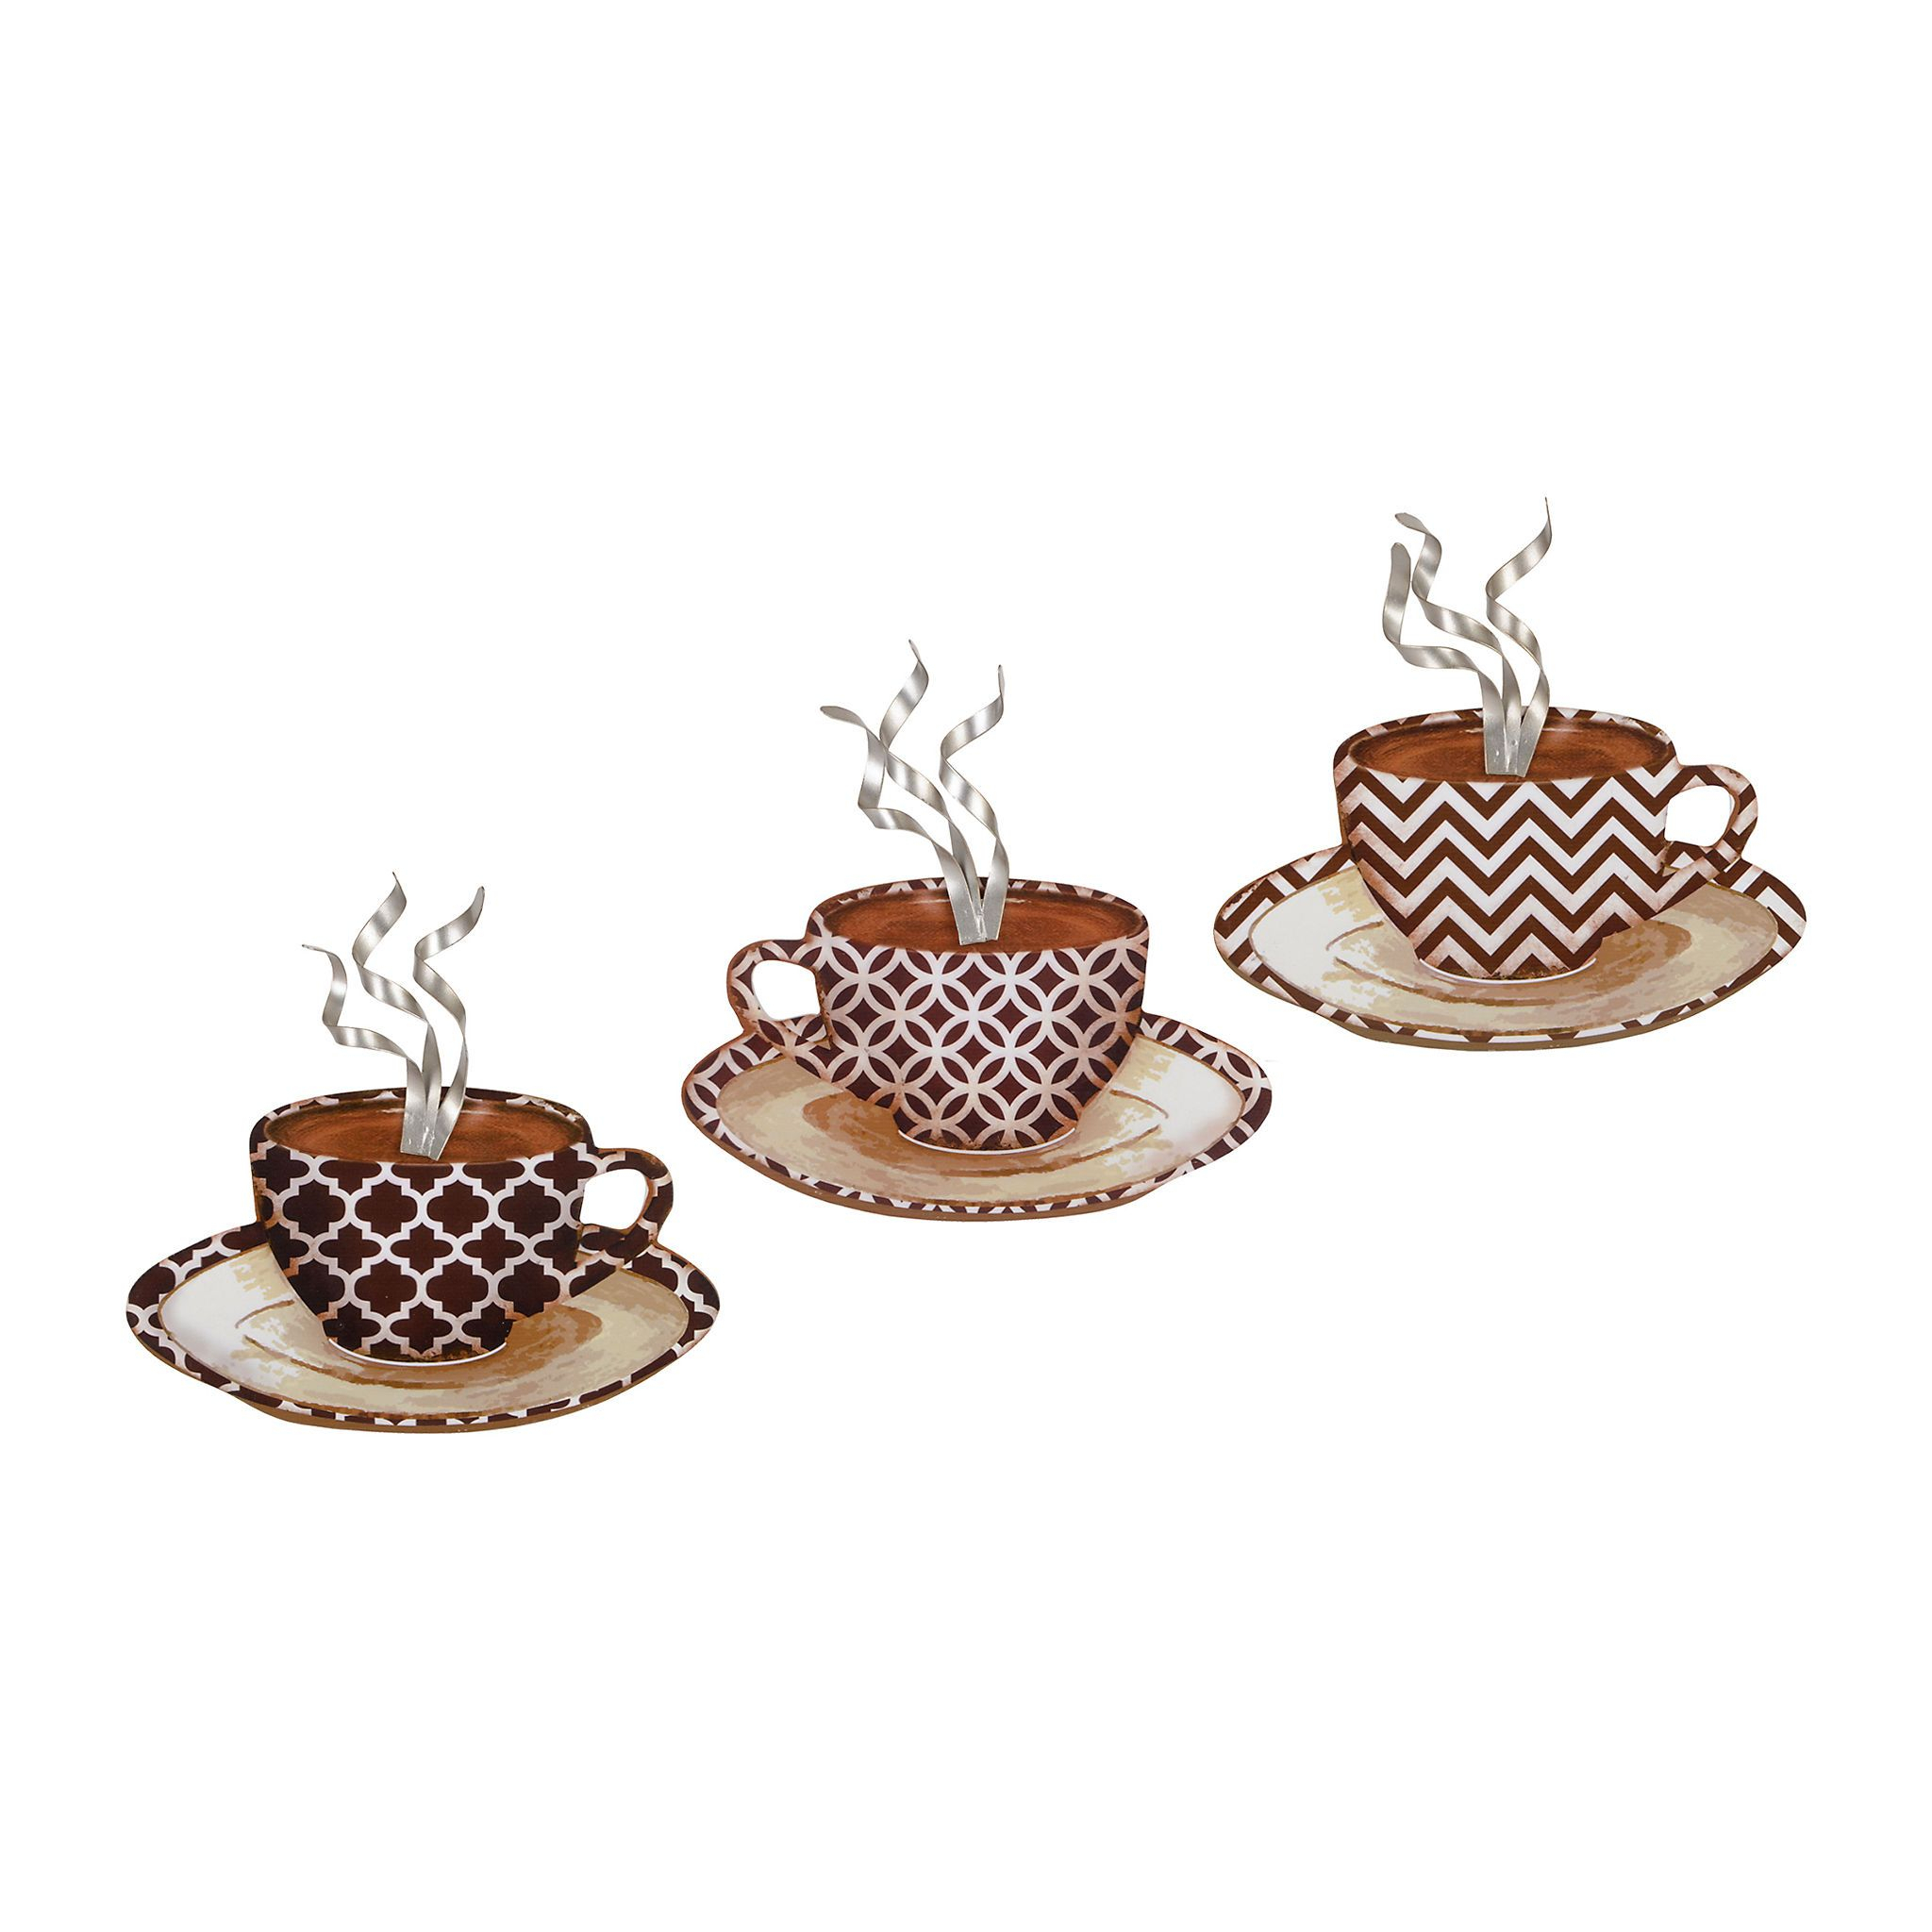 Decorative Three Stacked Coffee Tea Cups Iron Widget Wall Decor Within 2020 Product Details Patterned Coffee Mug Metal Plaques, Set Of  (View 7 of 20)